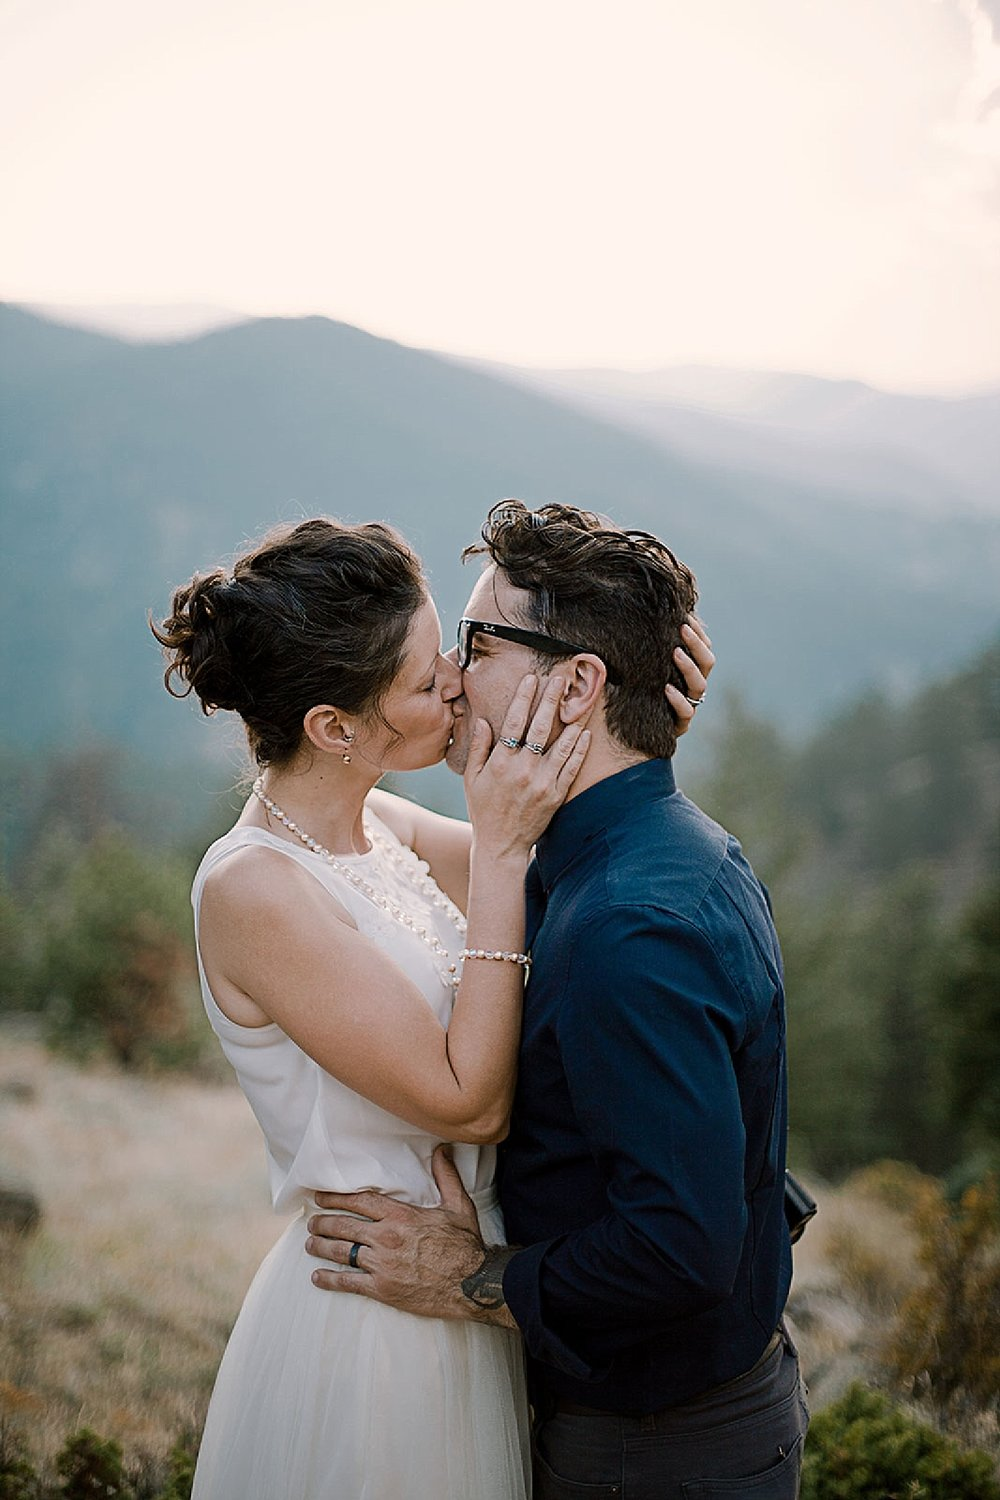 eloping couple, boulder colorado elopement, boulder colorado self solemnizing elopement, self solemnizing elopement, boulder colorado elopement photographer, realization point elopement